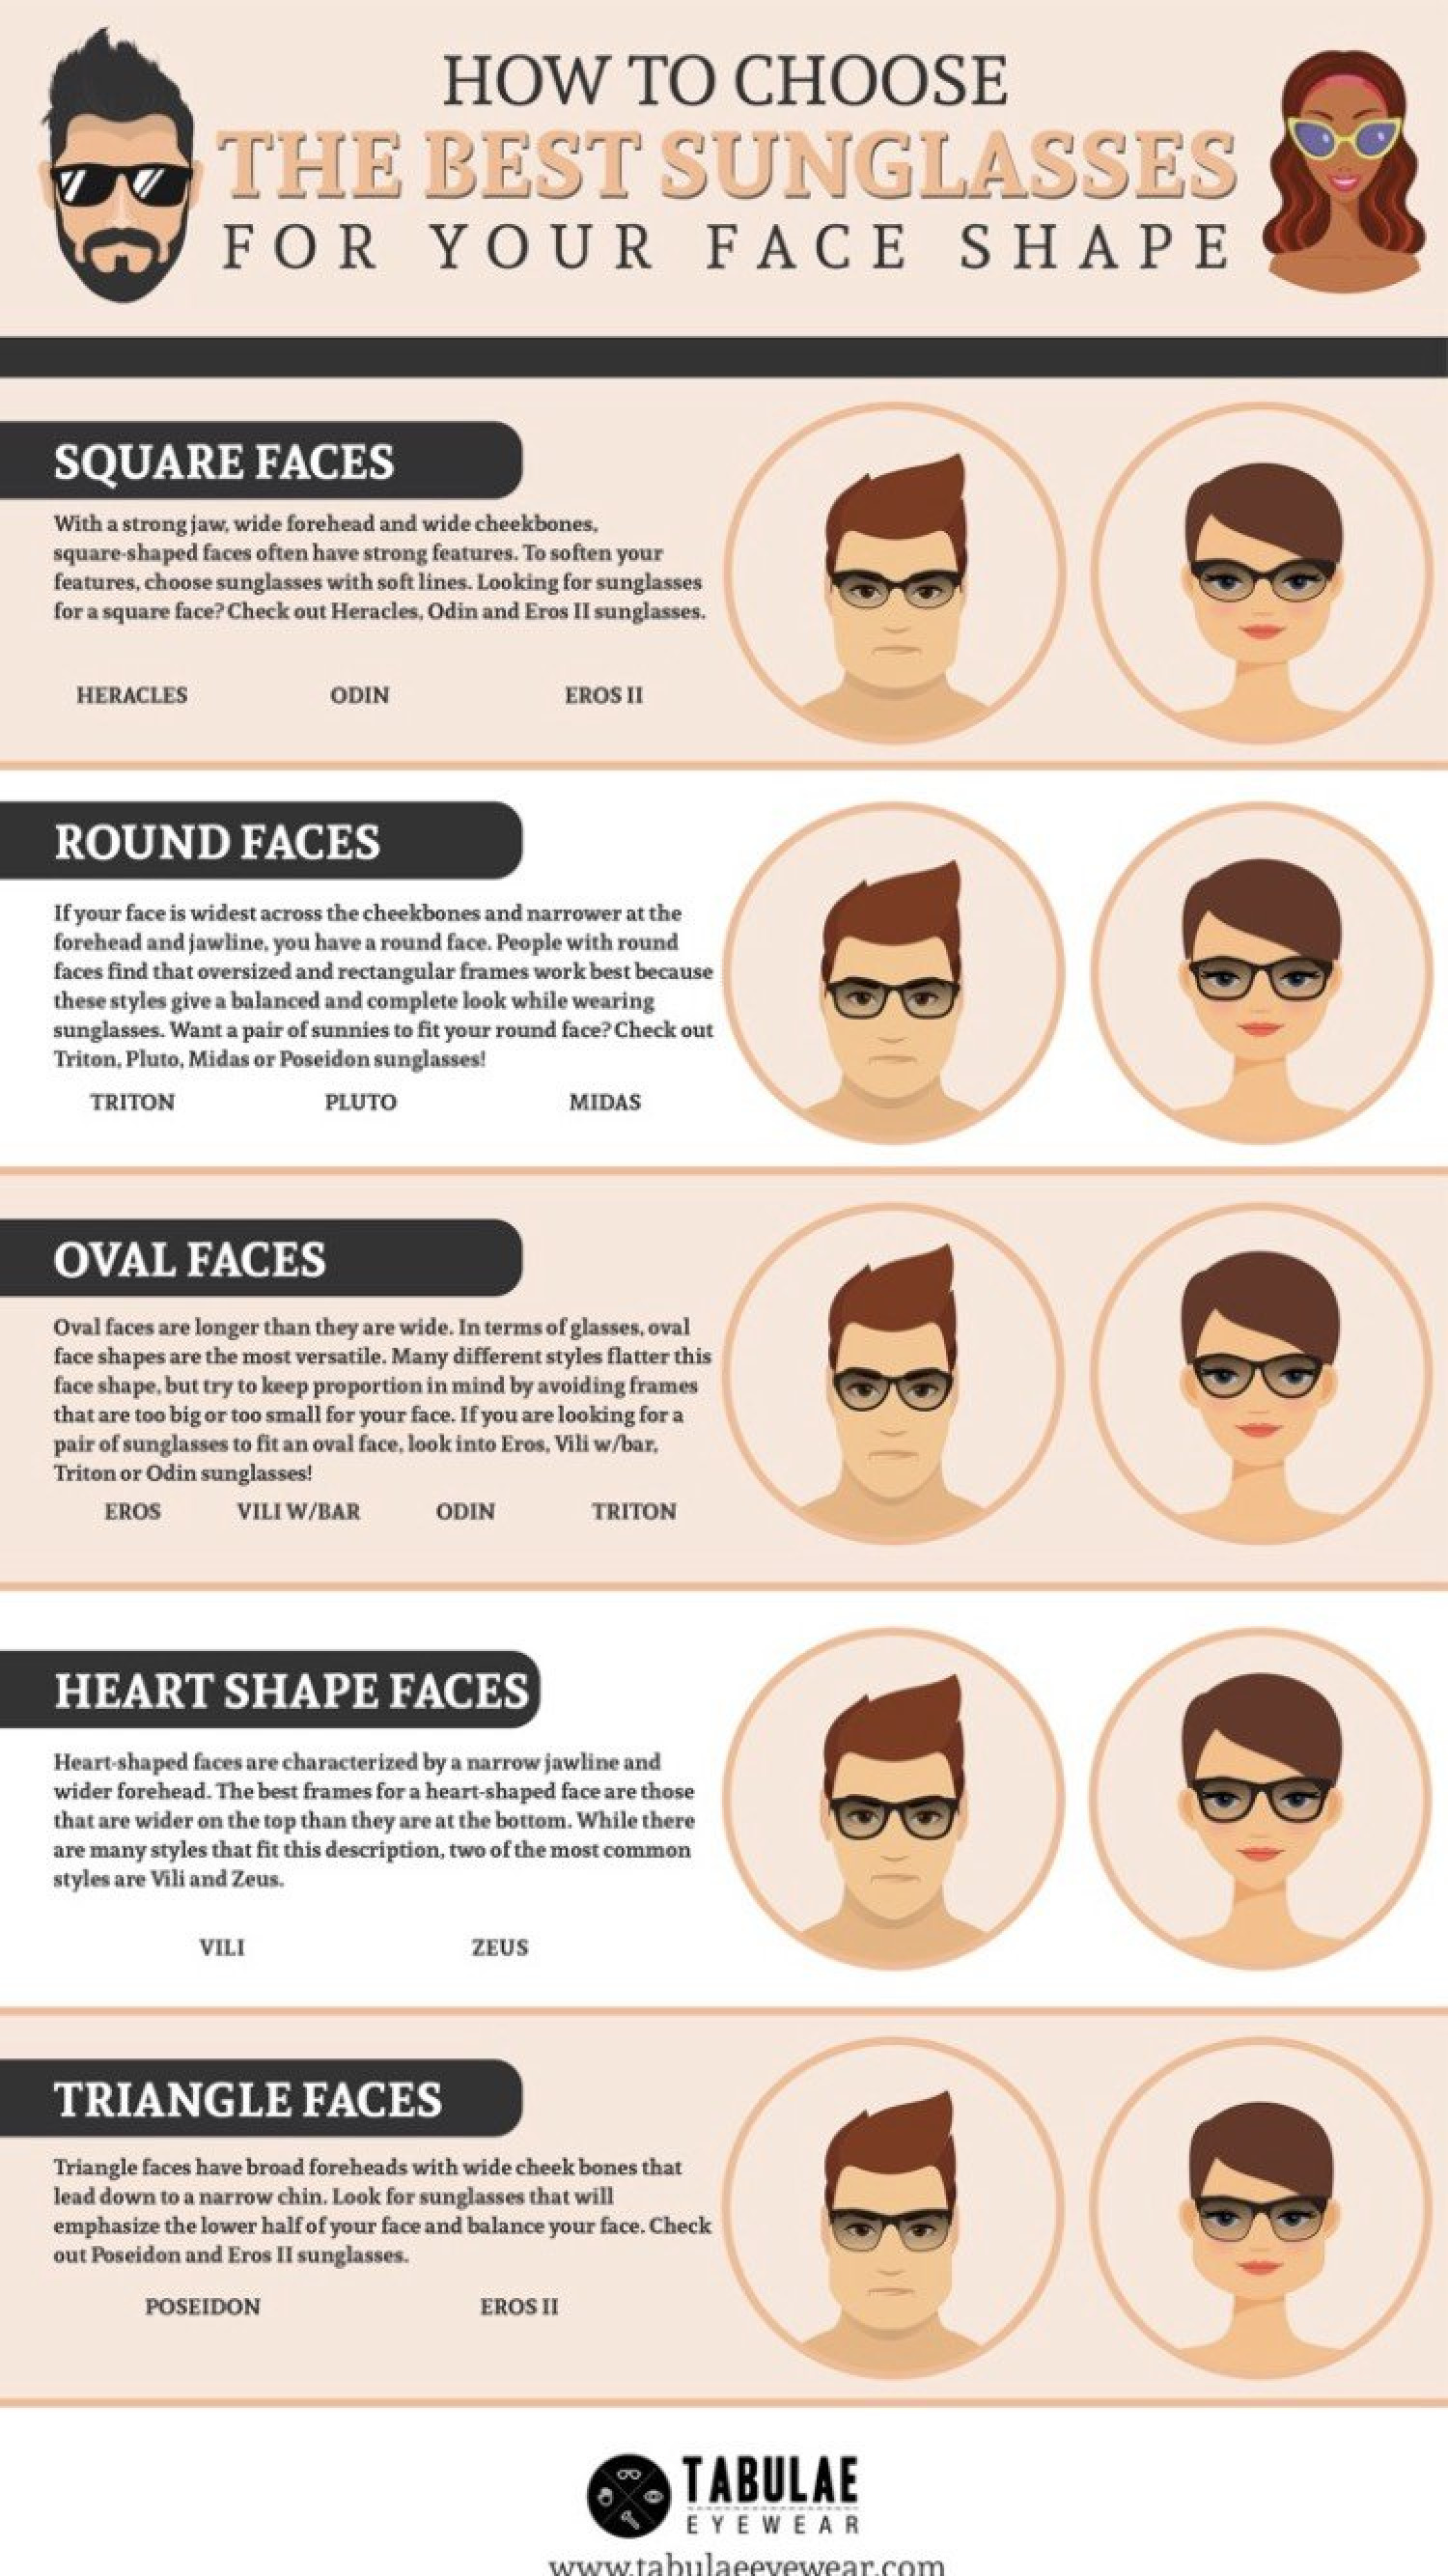 a56231136f Tabulae Eyewear - How to Choose the Best Sunglasses for Your Face Shape  Infographic